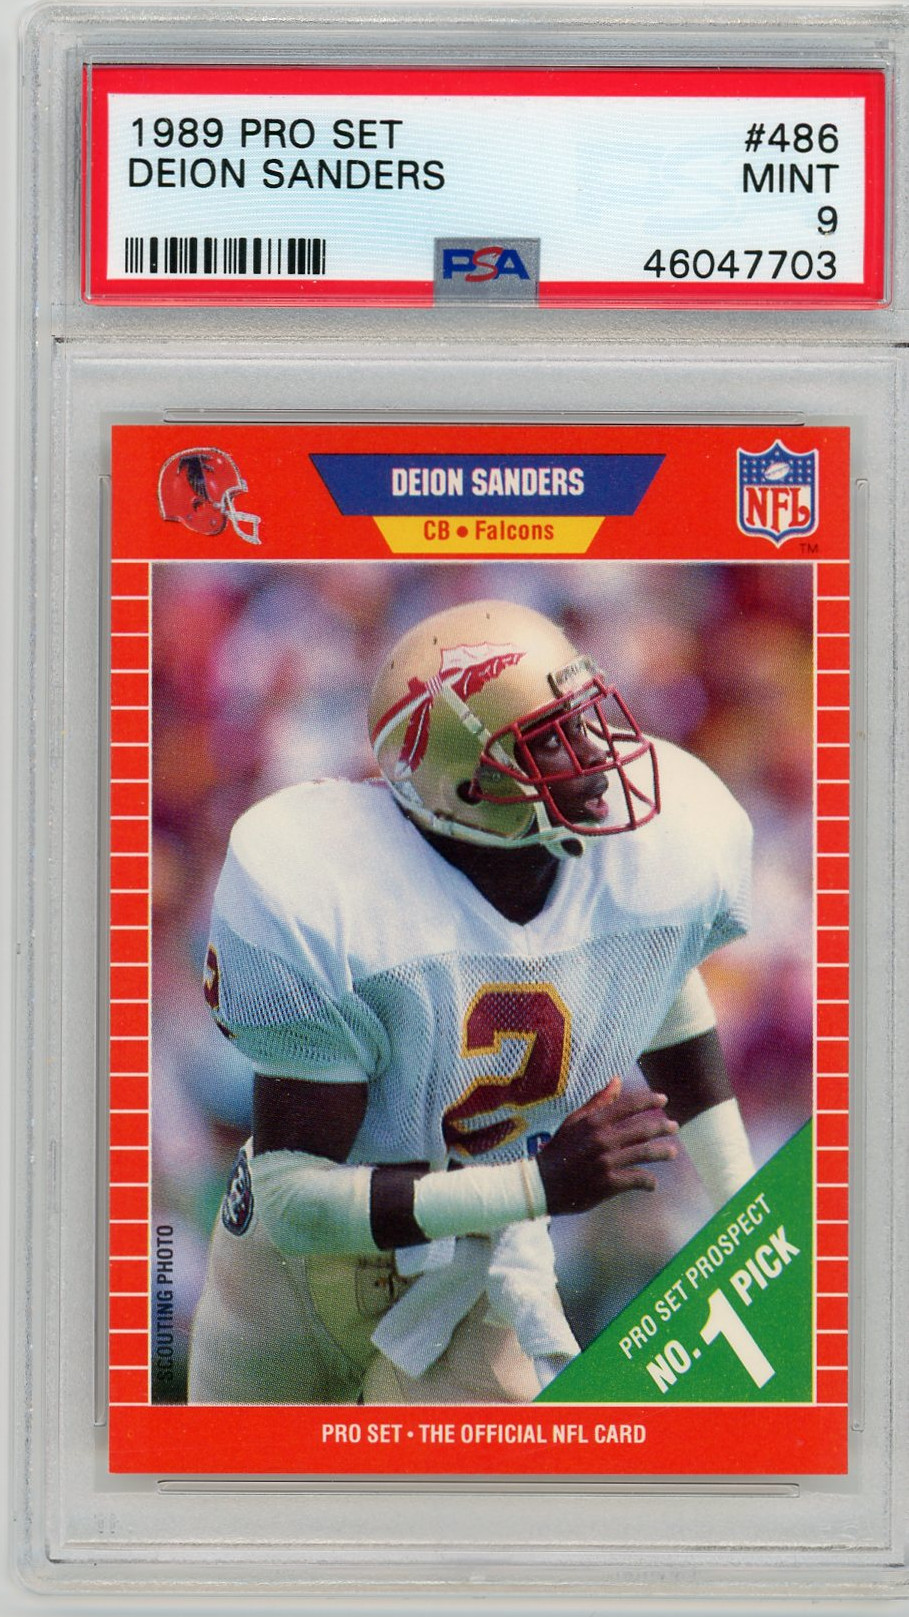 Deion Sanders Florida State Seminoles 1989 Pro Set Football Rookie Card RC #486 Graded PSA 9 MINT Deion Sanders Florida State Seminoles 1989 Pro Set Football Rookie Card RC #486 Graded PSA 9 MINT